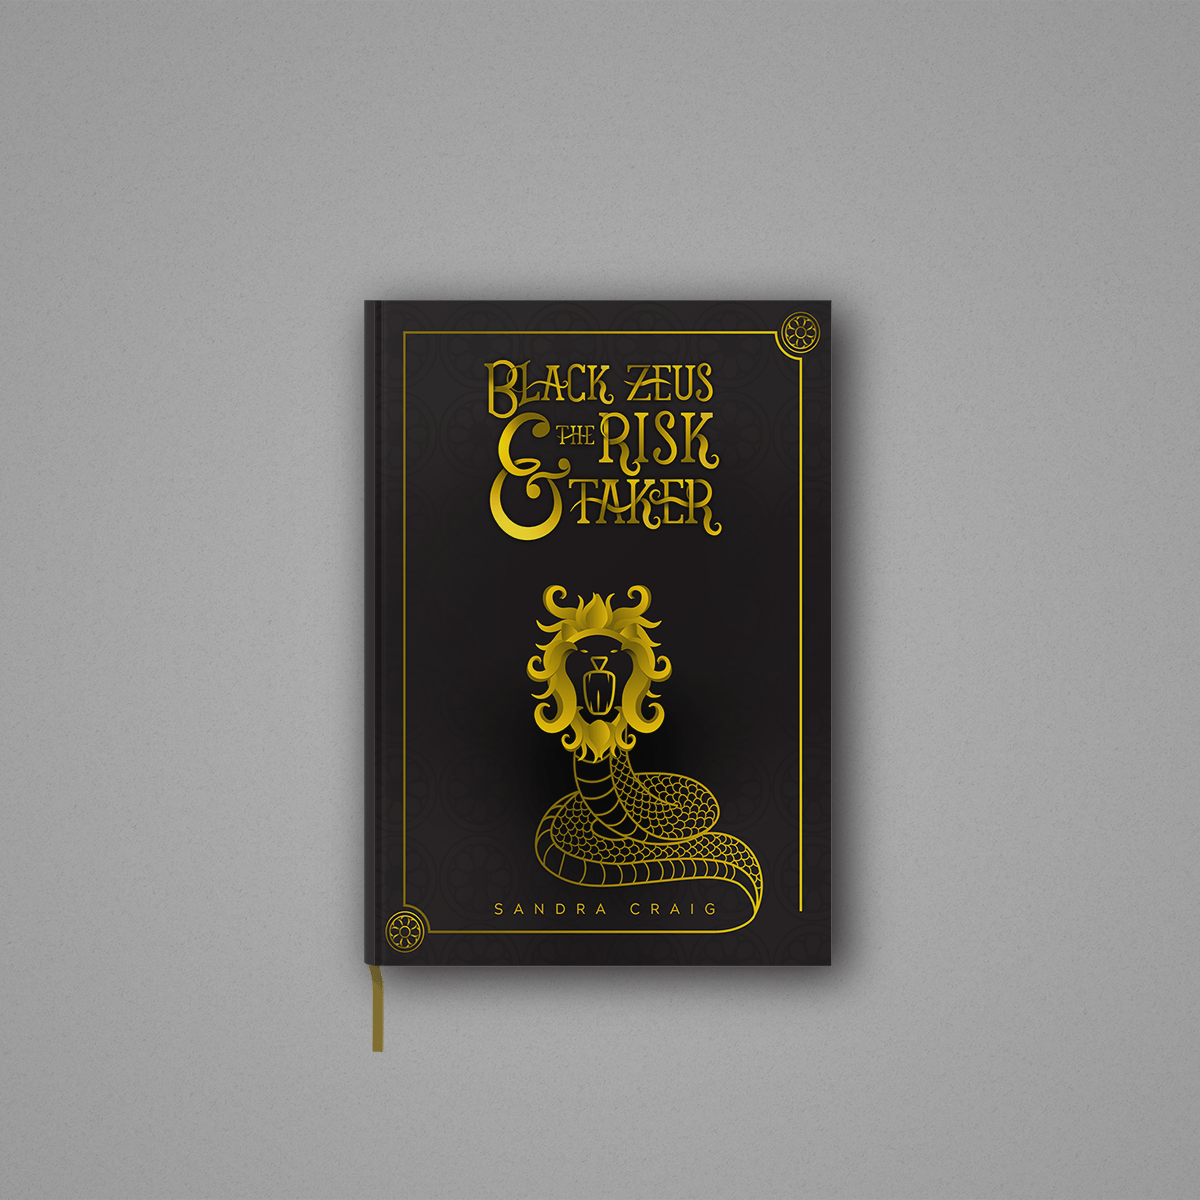 Black Zeus and the Risk Taker book mockup